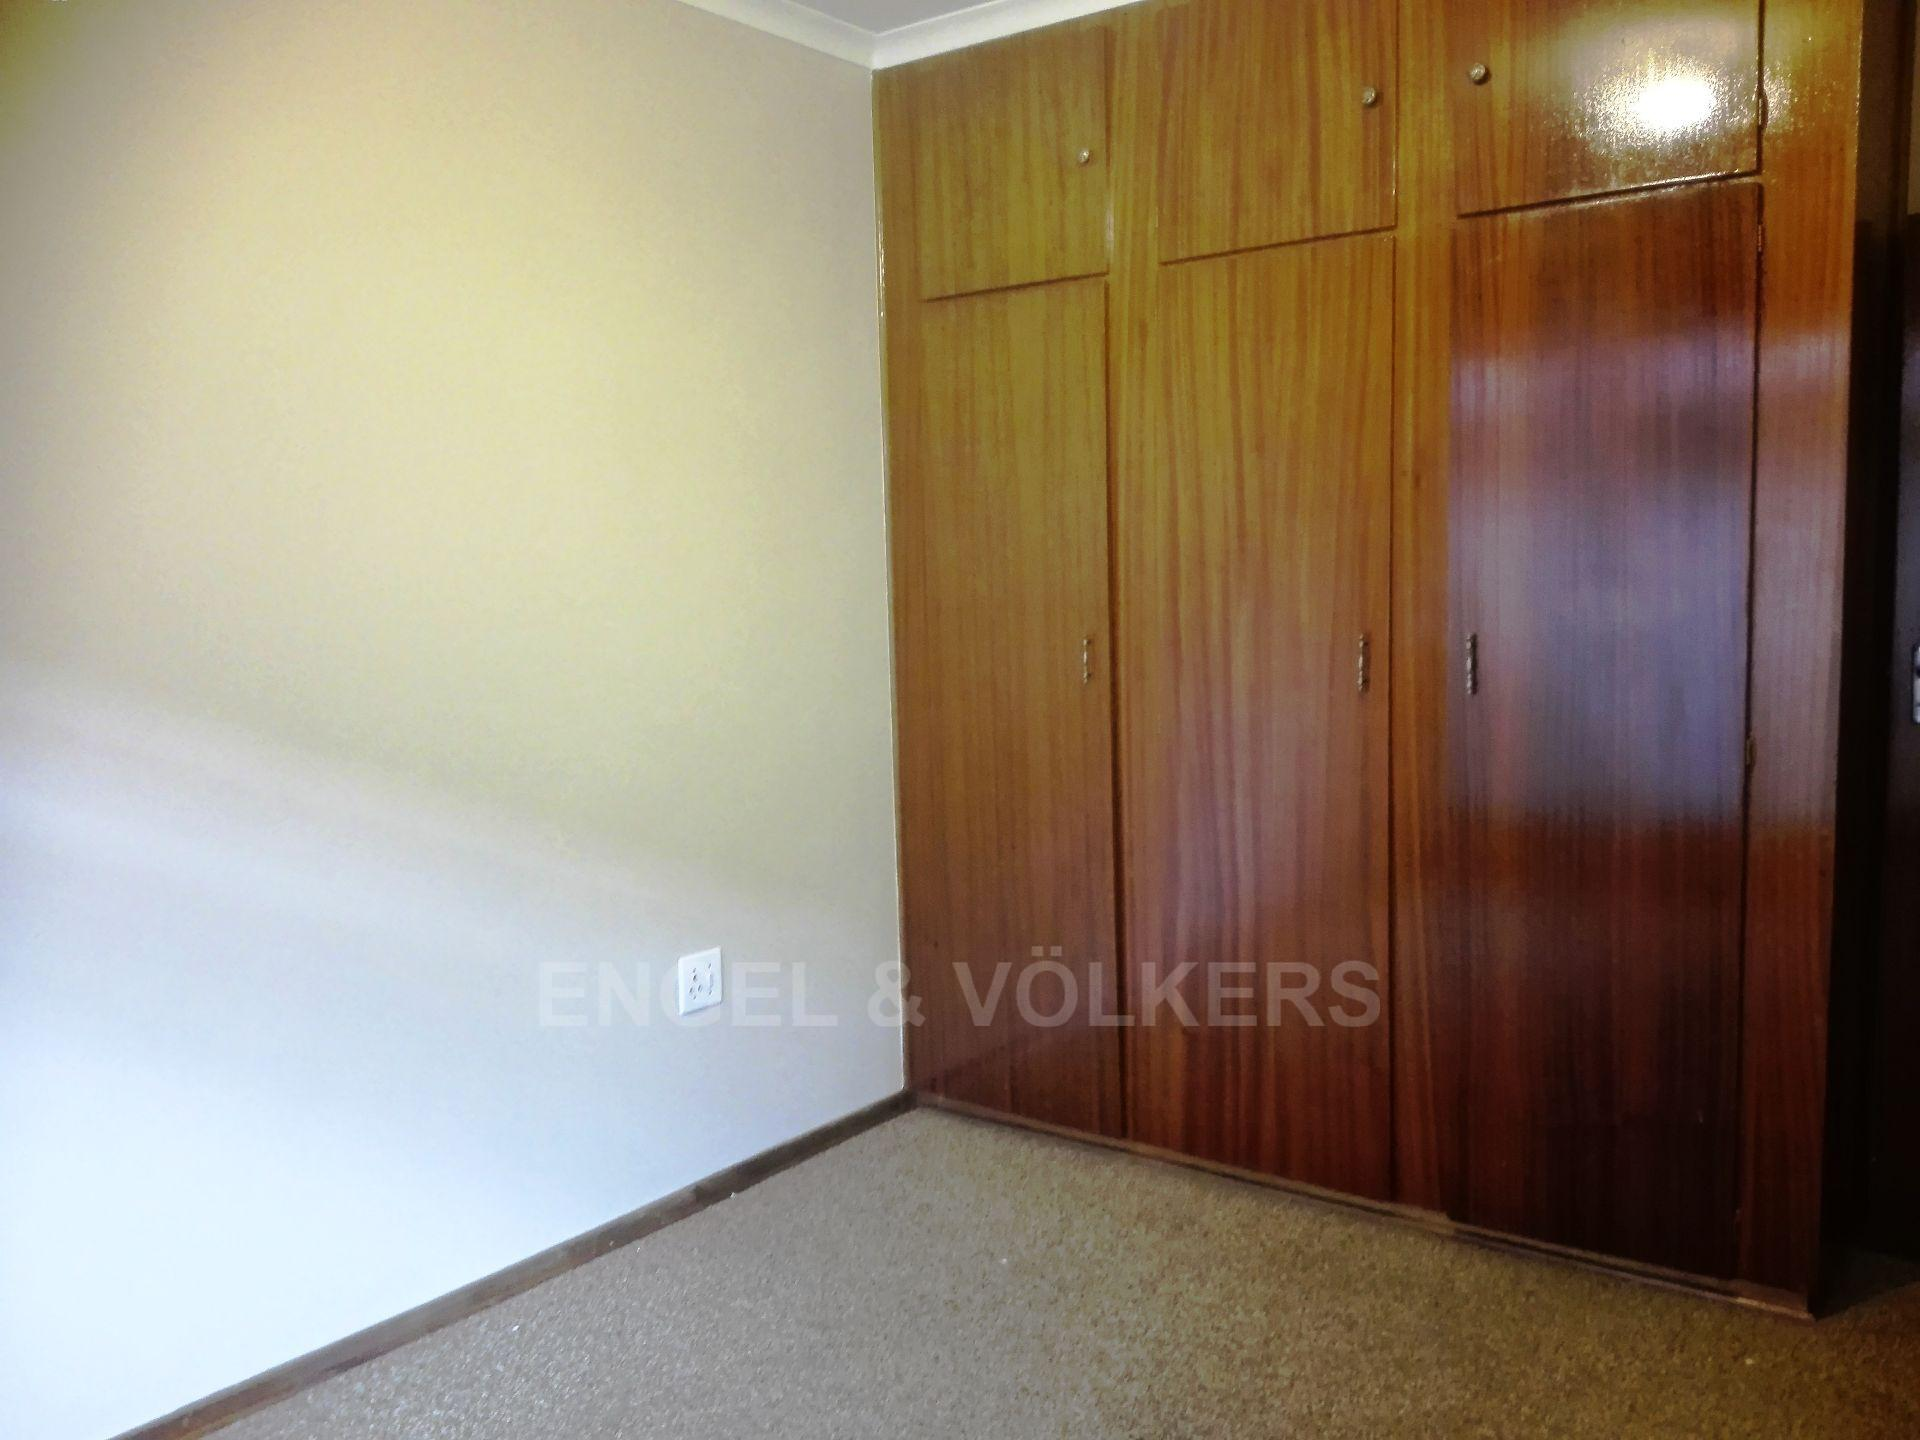 Potchefstroom Central for sale property. Ref No: 13498695. Picture no 15